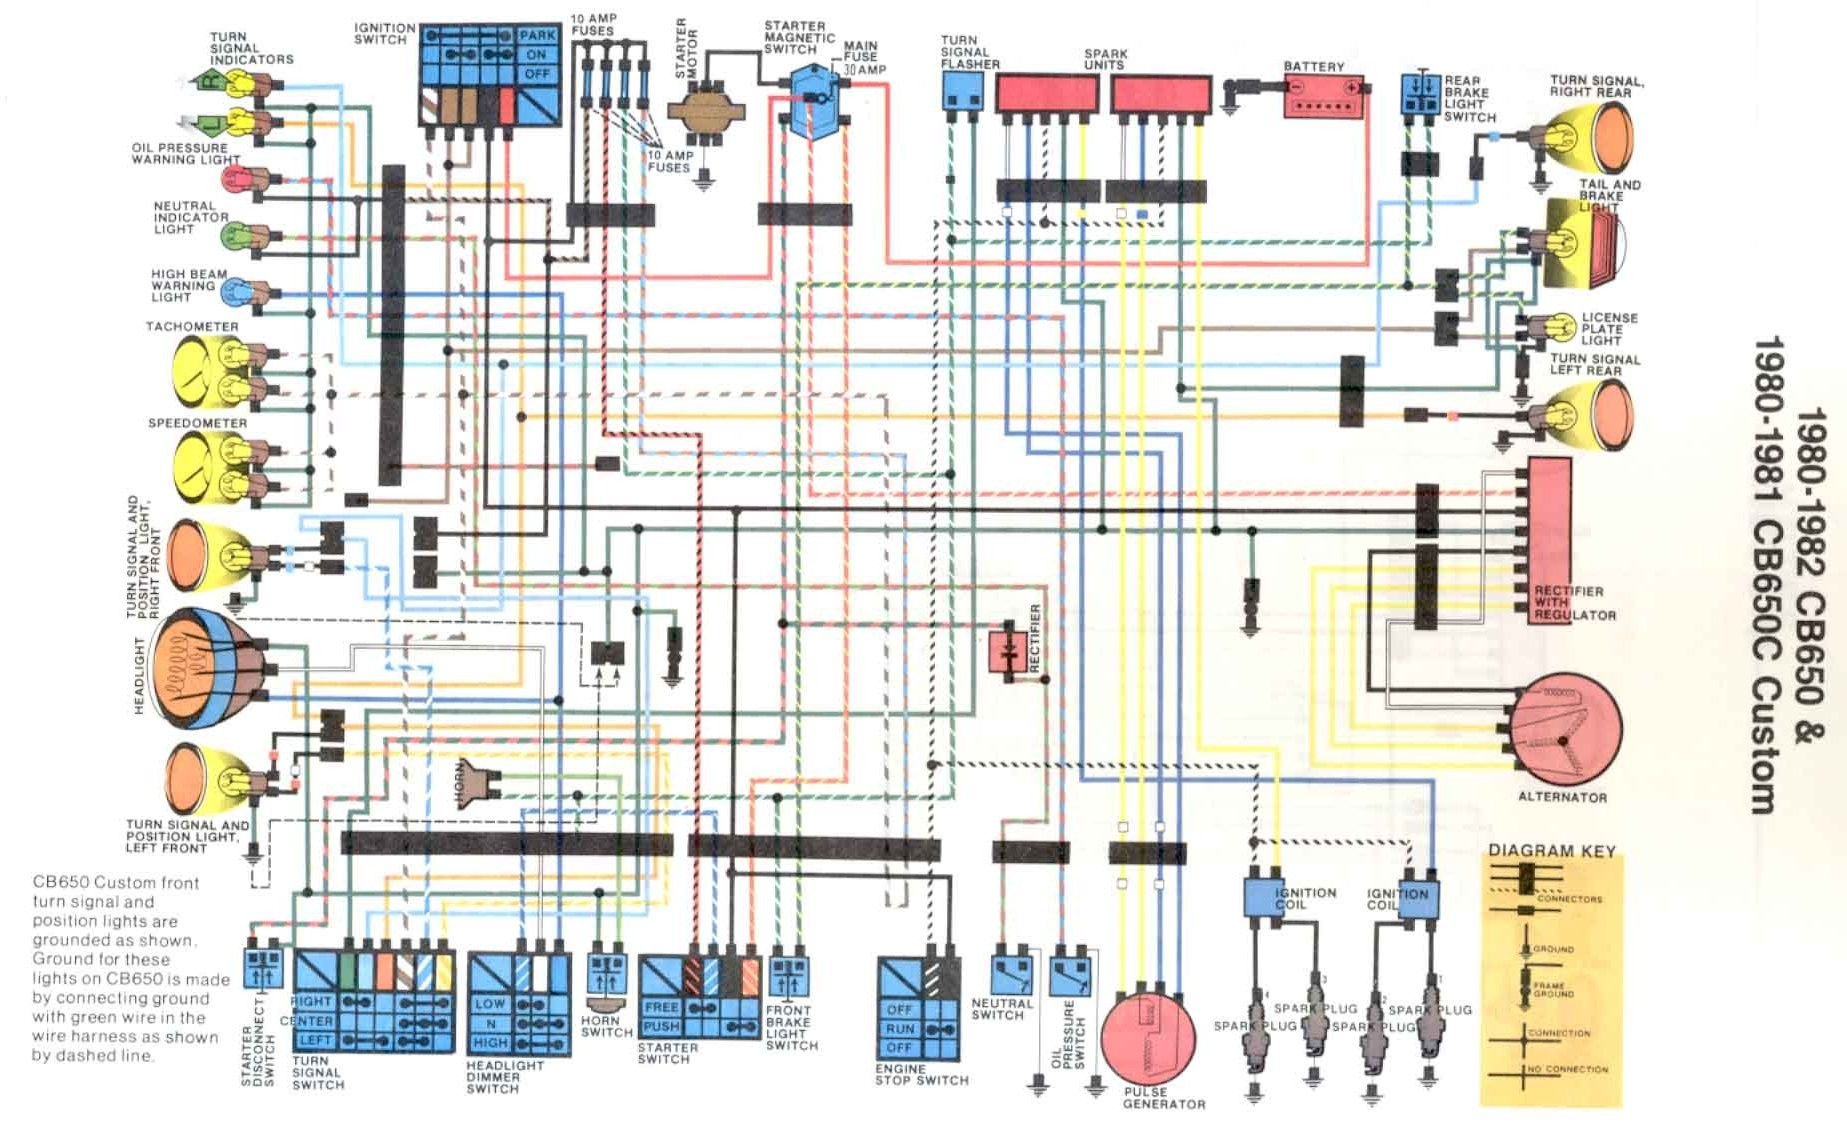 hight resolution of gl500 wiring diagram wiring diagrams 1981 goldwing wiring diagram schema wiring diagram 81 honda gl500 wiring